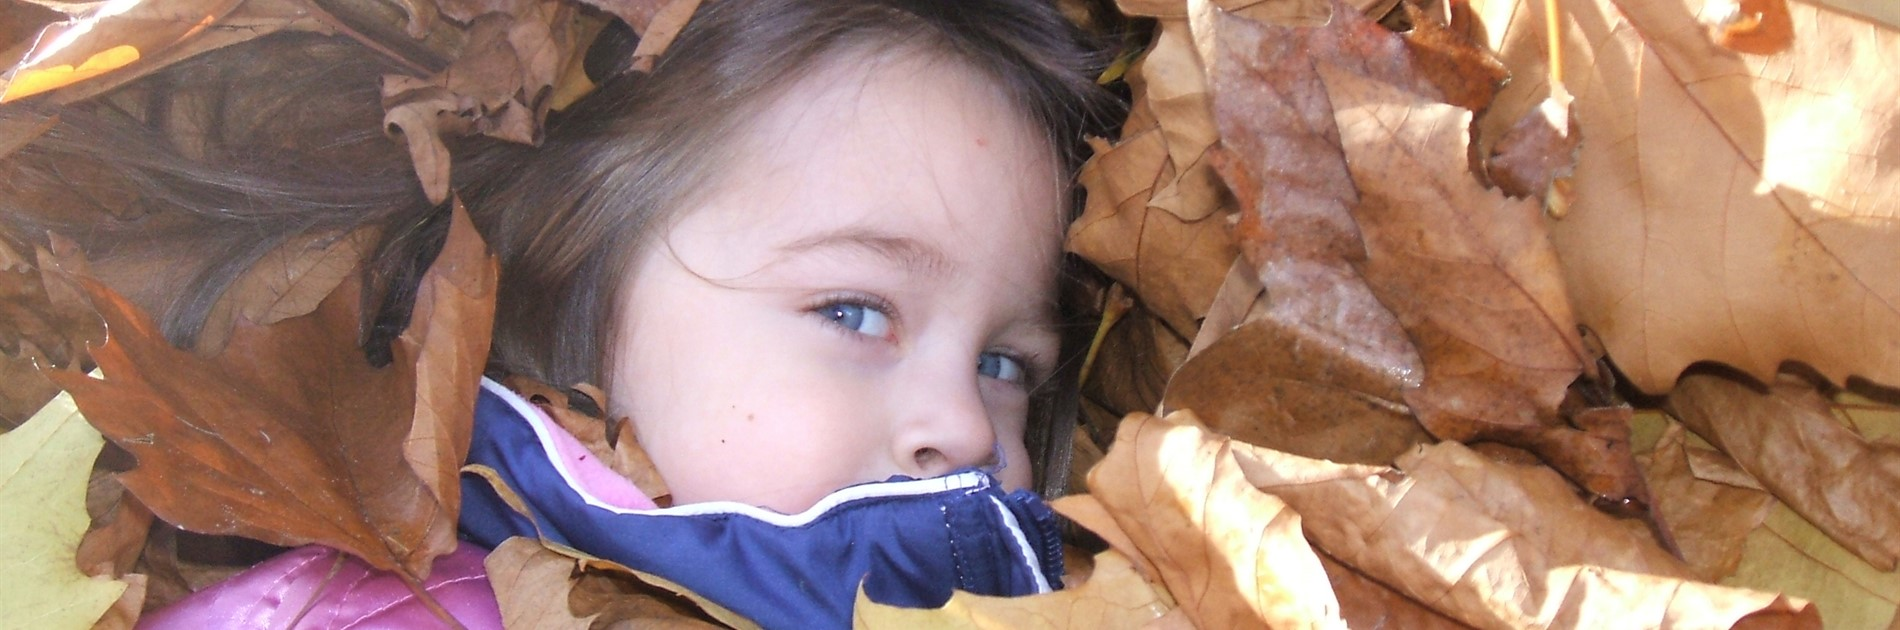 Young girl hiding in leaves